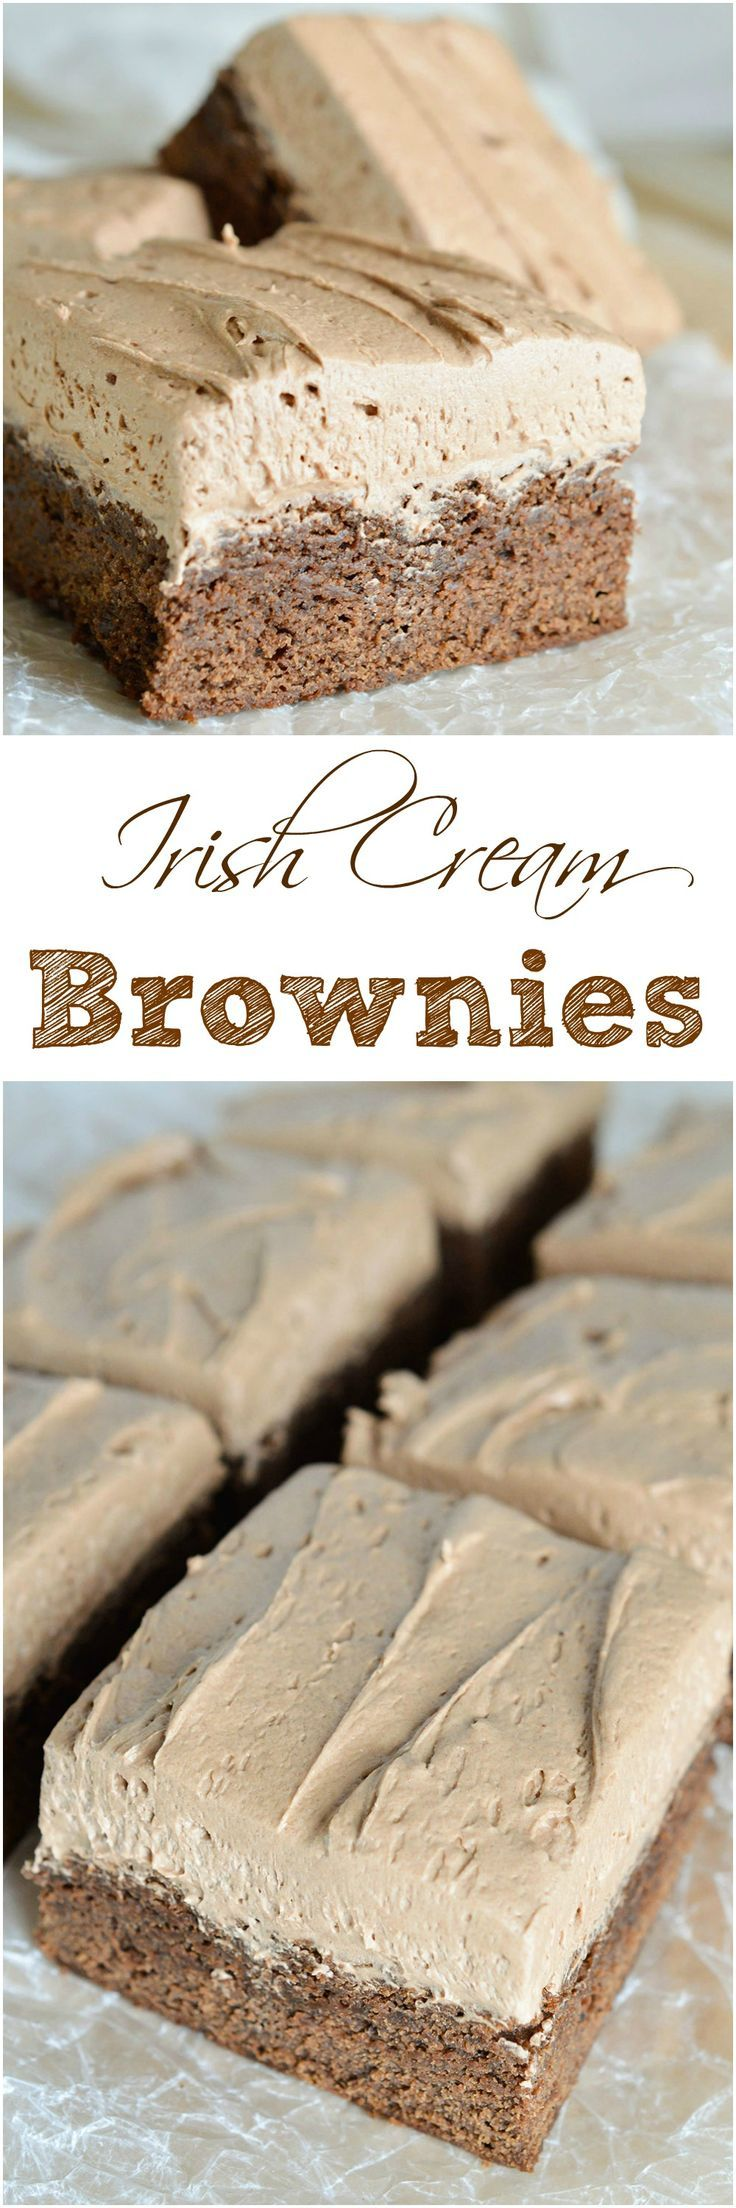 Irish Cream Chocolate Brownie